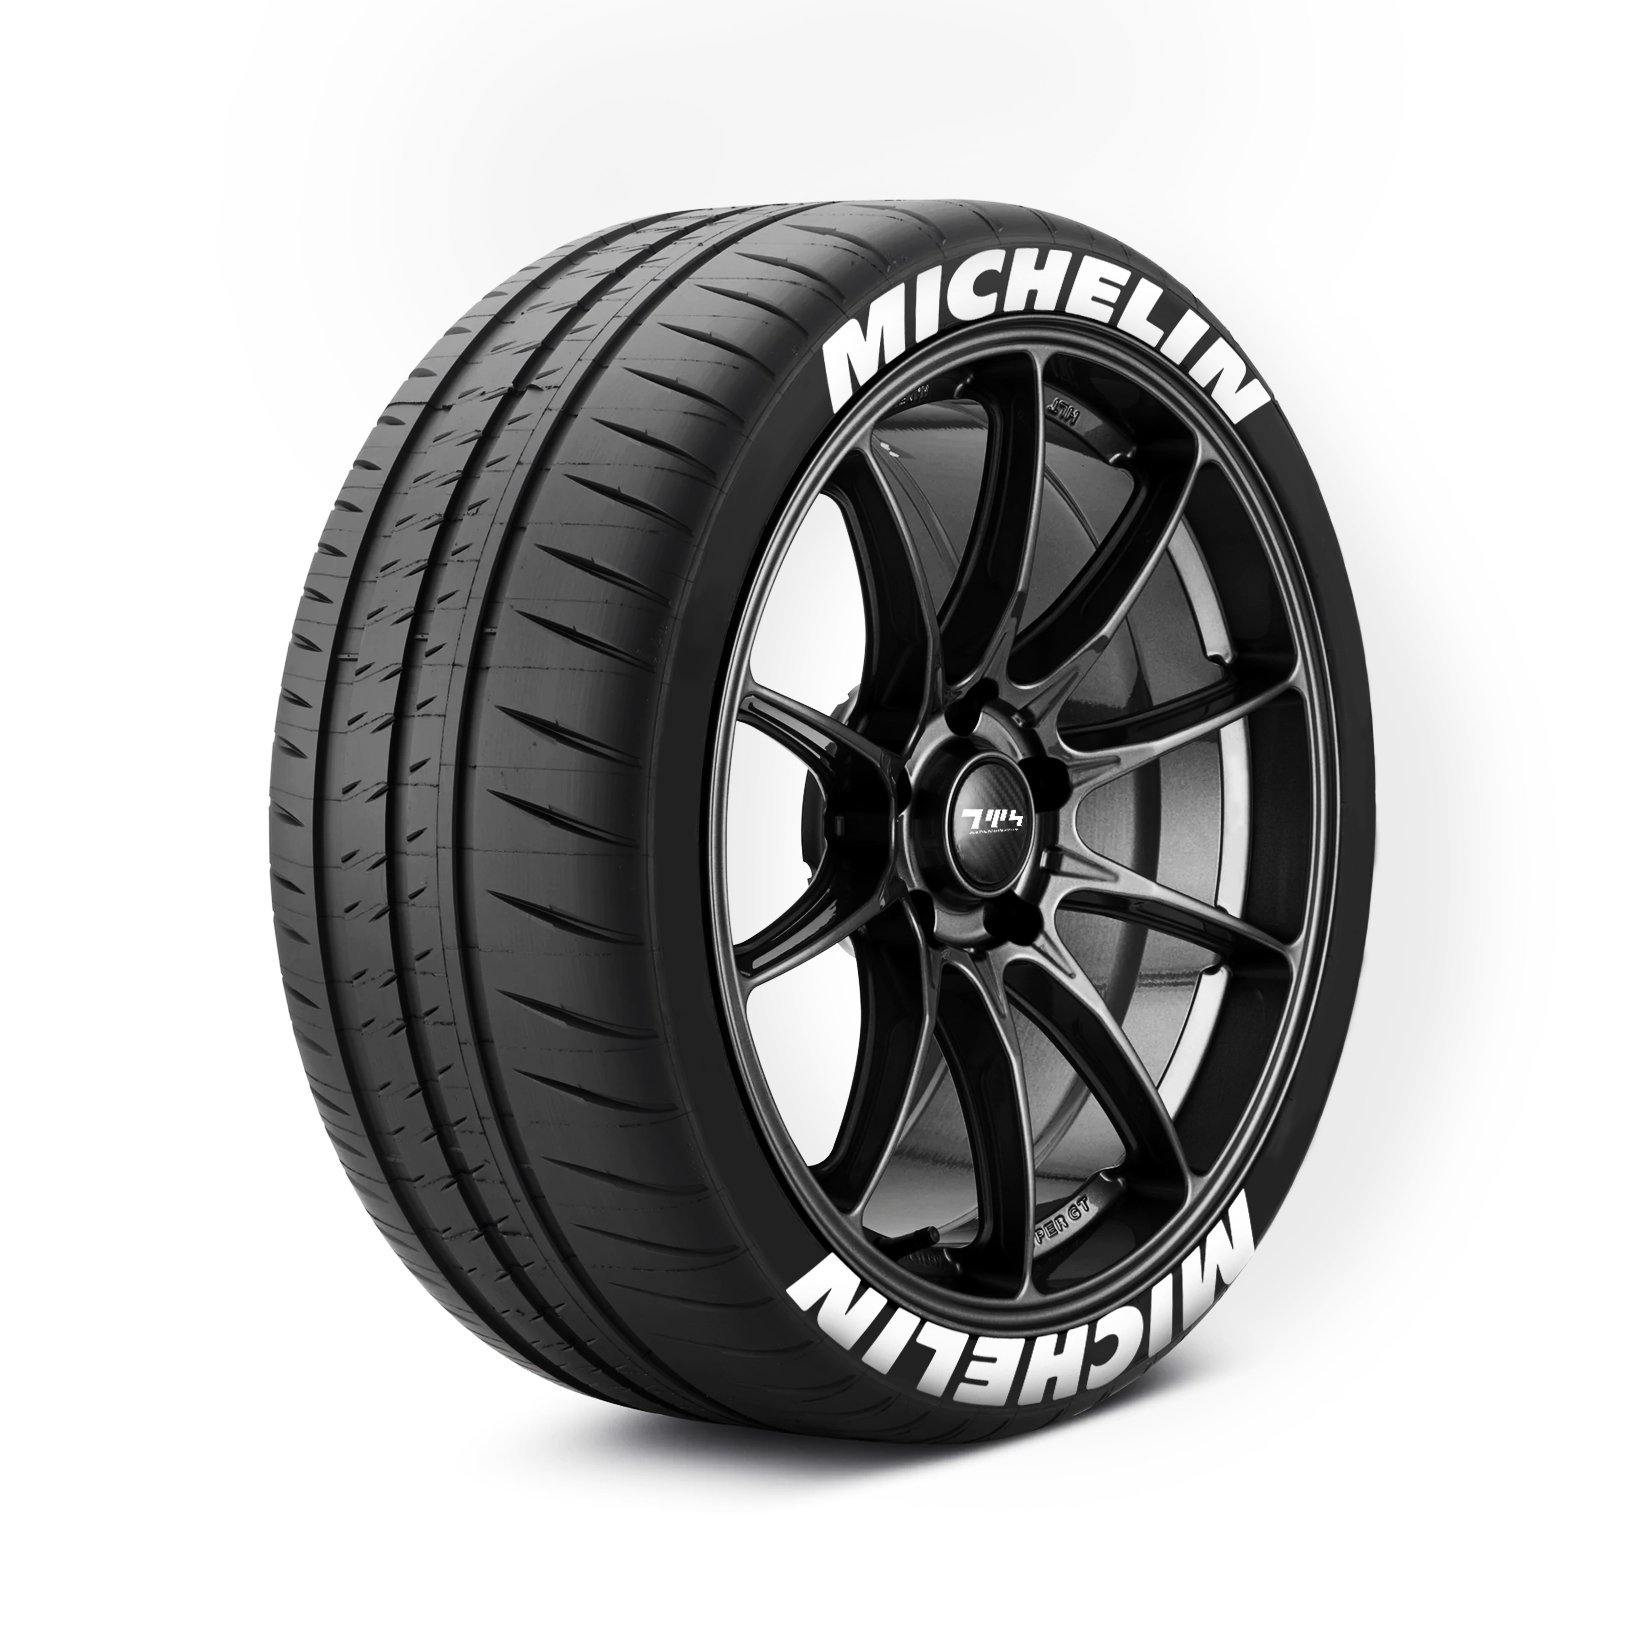 MICHELIN Tyre Stickers - Tyre Wall Stickers